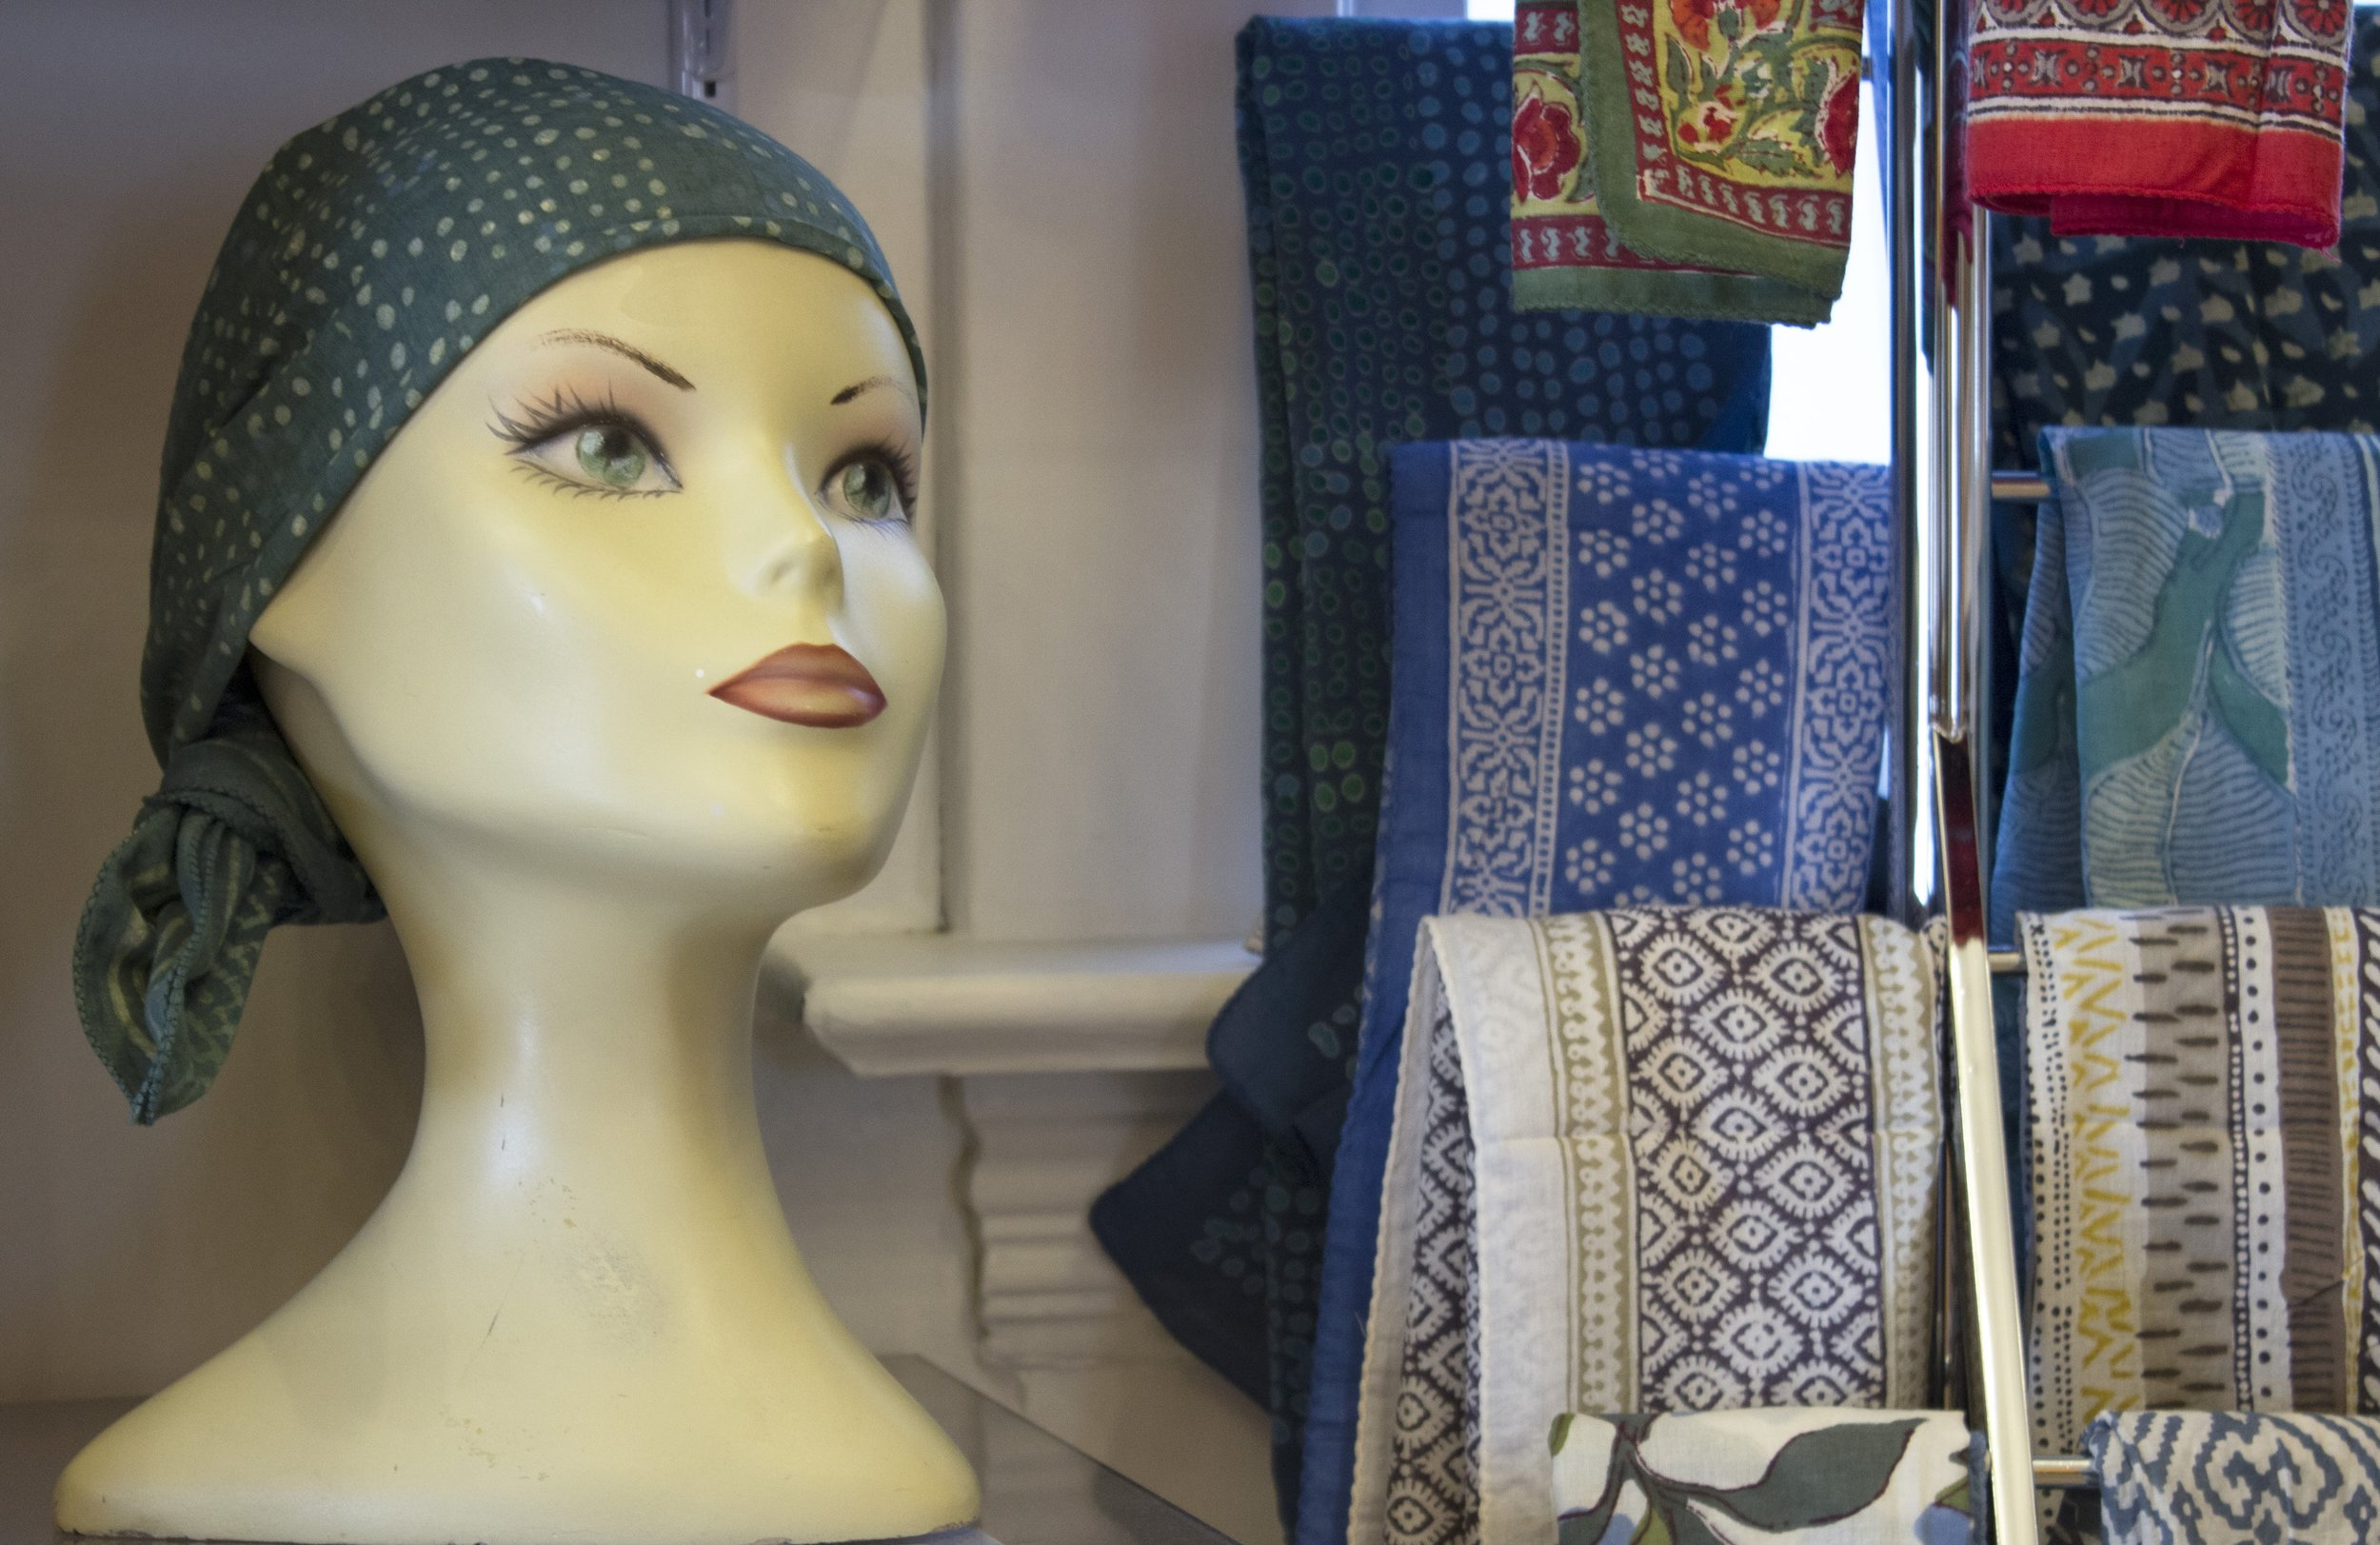 A plastic mannequin head displaying a scarf, with more scarfs hanging next to it. From the headcoverings section at The Wig Boutique.